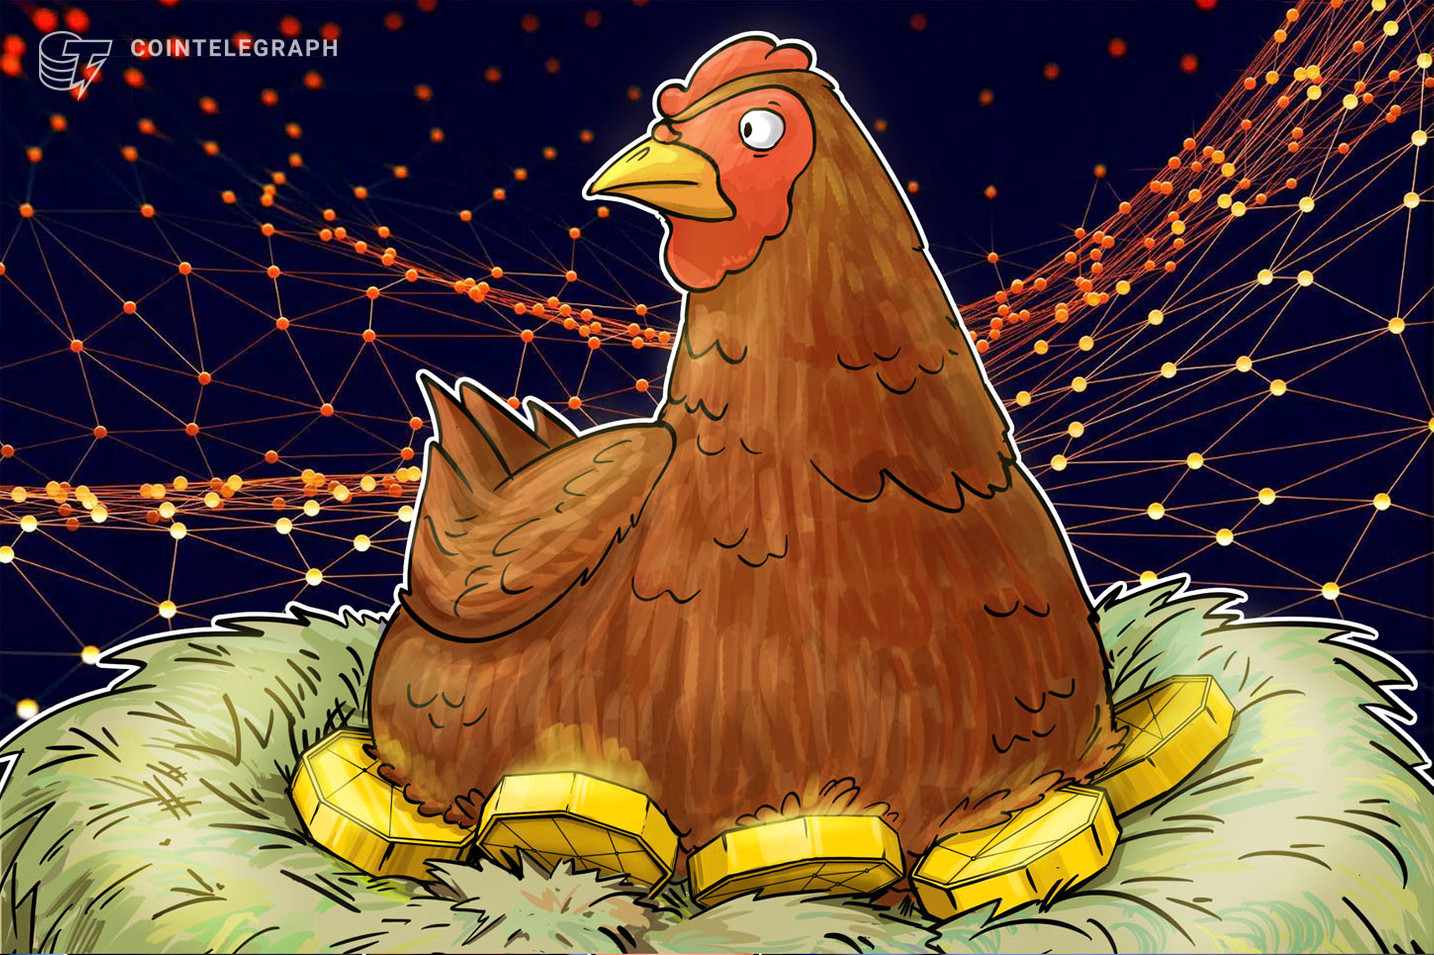 Egg Producer's Data Poached by Ransomware, Will They Shell Out Bitcoin?